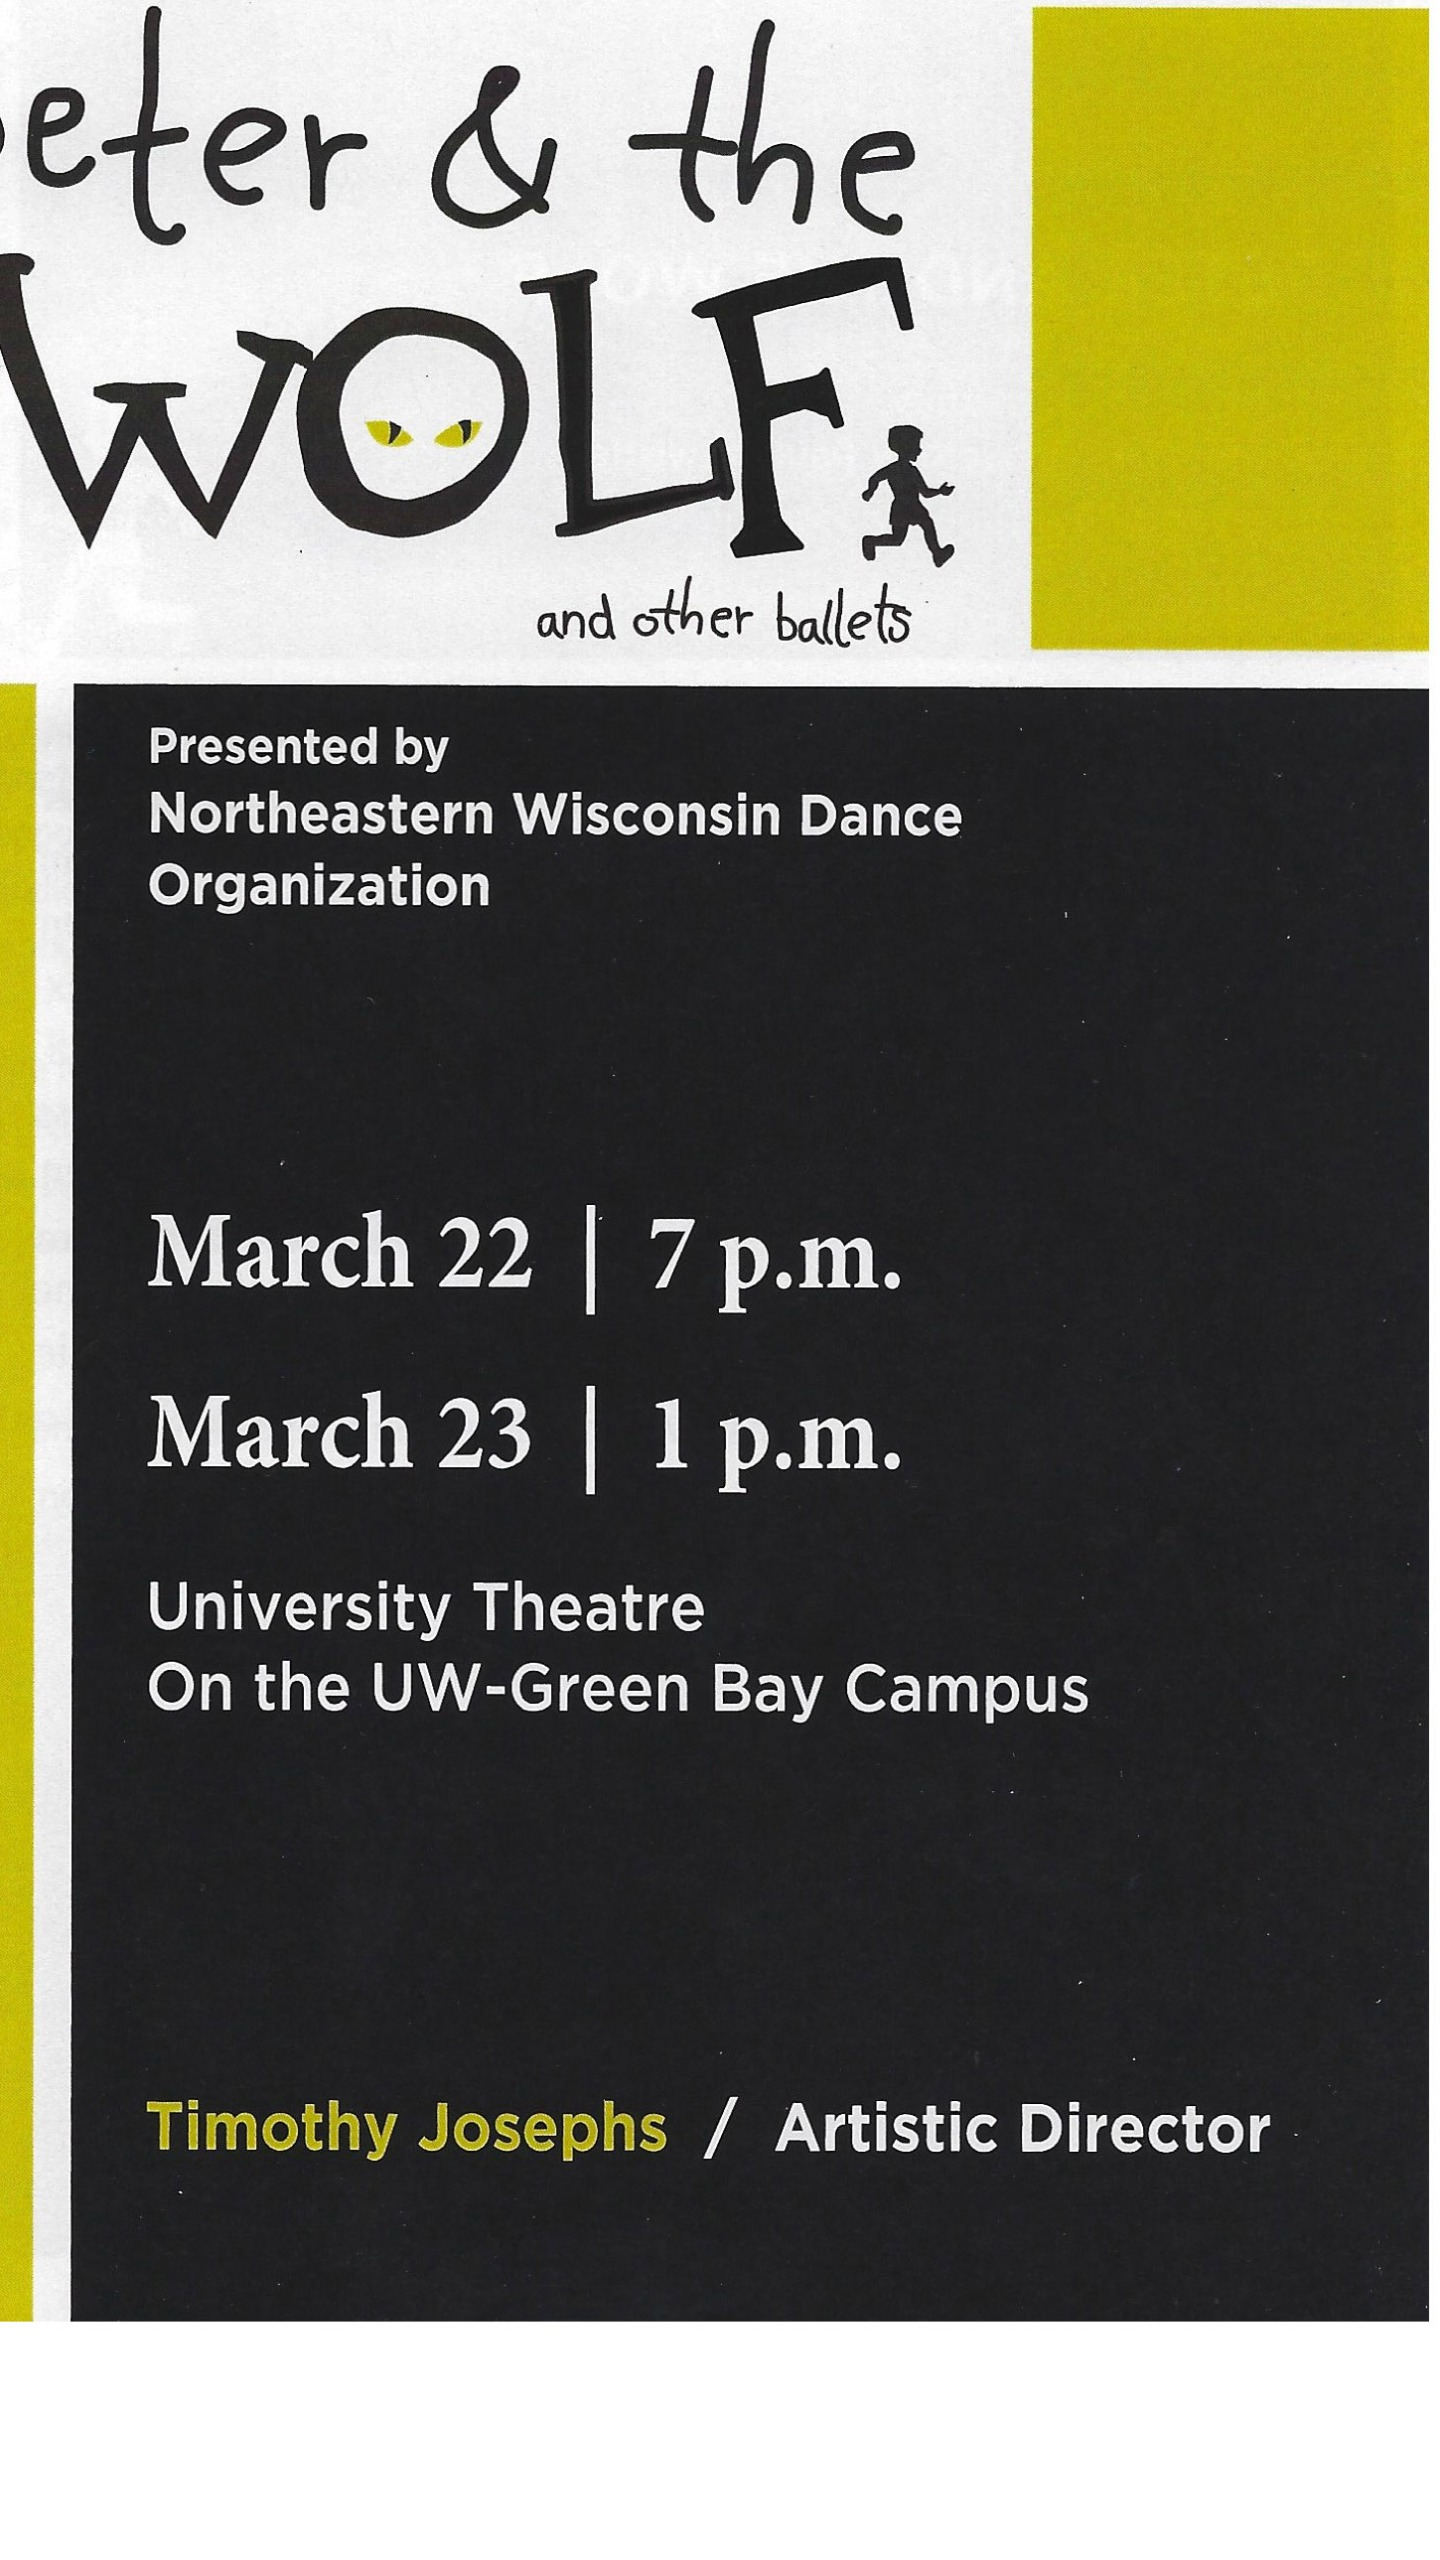 Northeastern Wisconsin Dance Organization Peter and the Wolf and other ballets program cover_1553348954966.jpg.jpg